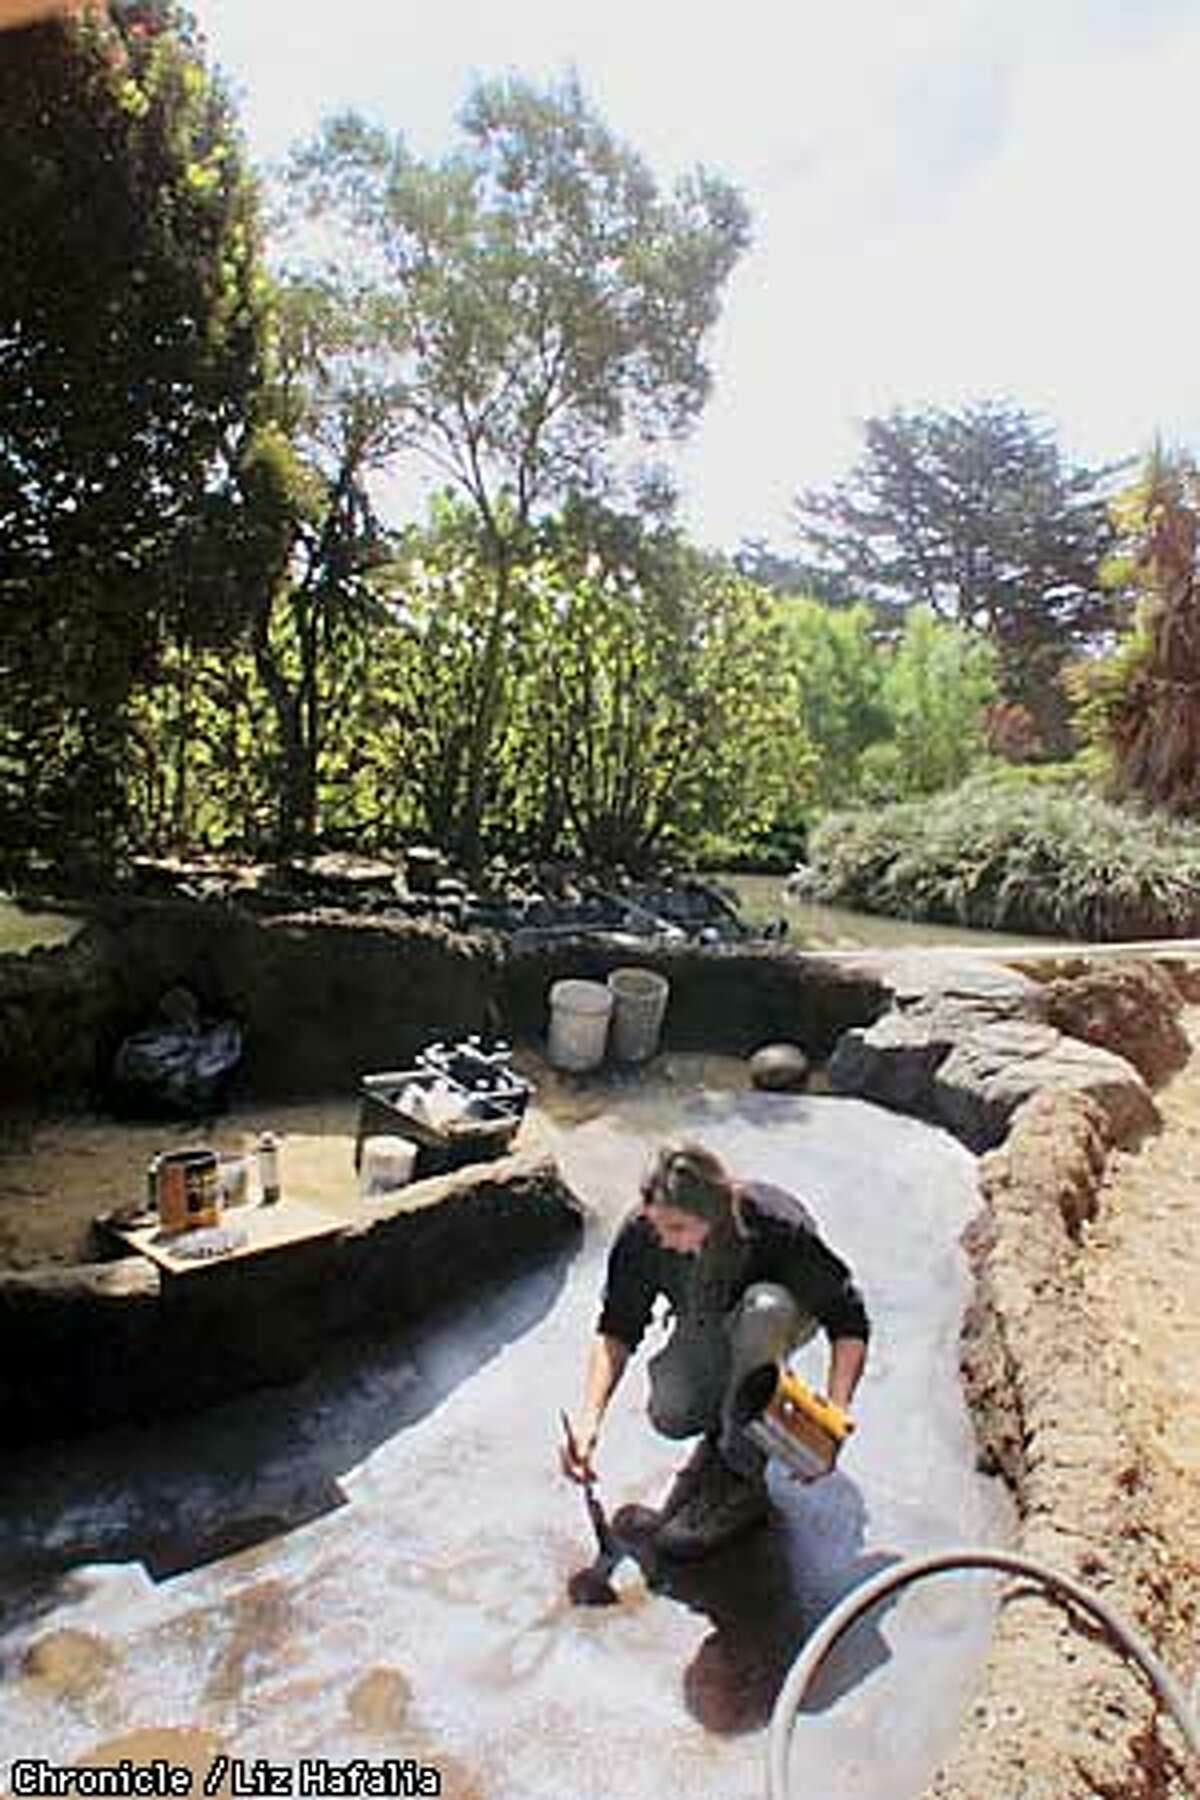 Eric Krussman working on the new home for turtles at the Children's Zoo. (BY LIZ HAFALIA/THE SAN FRANCISCO CHRONICLE)